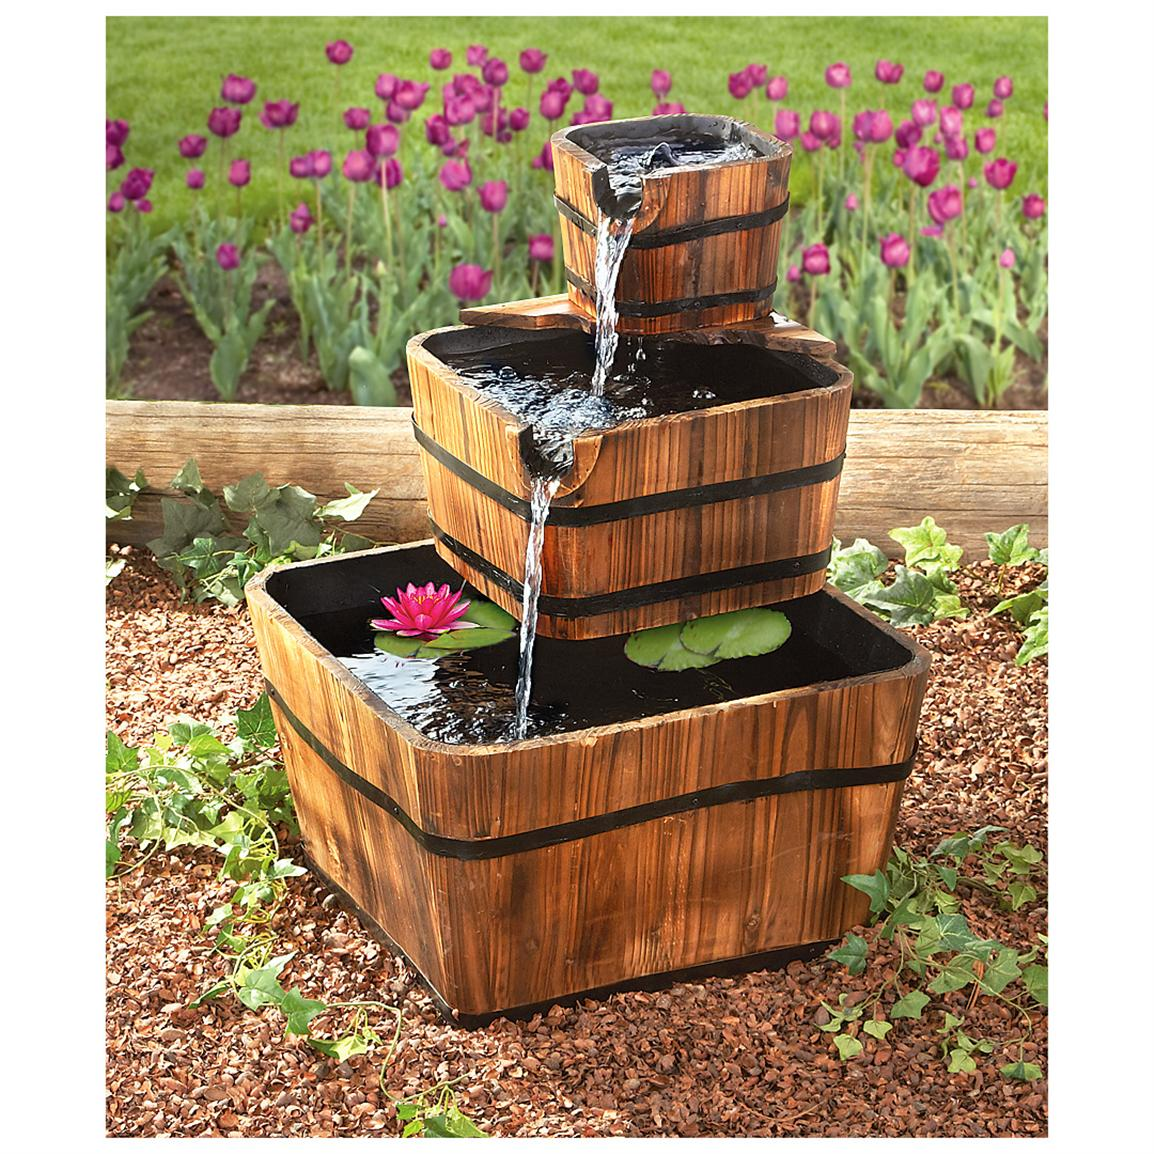 Image of: Barrel Fountain Outdoor